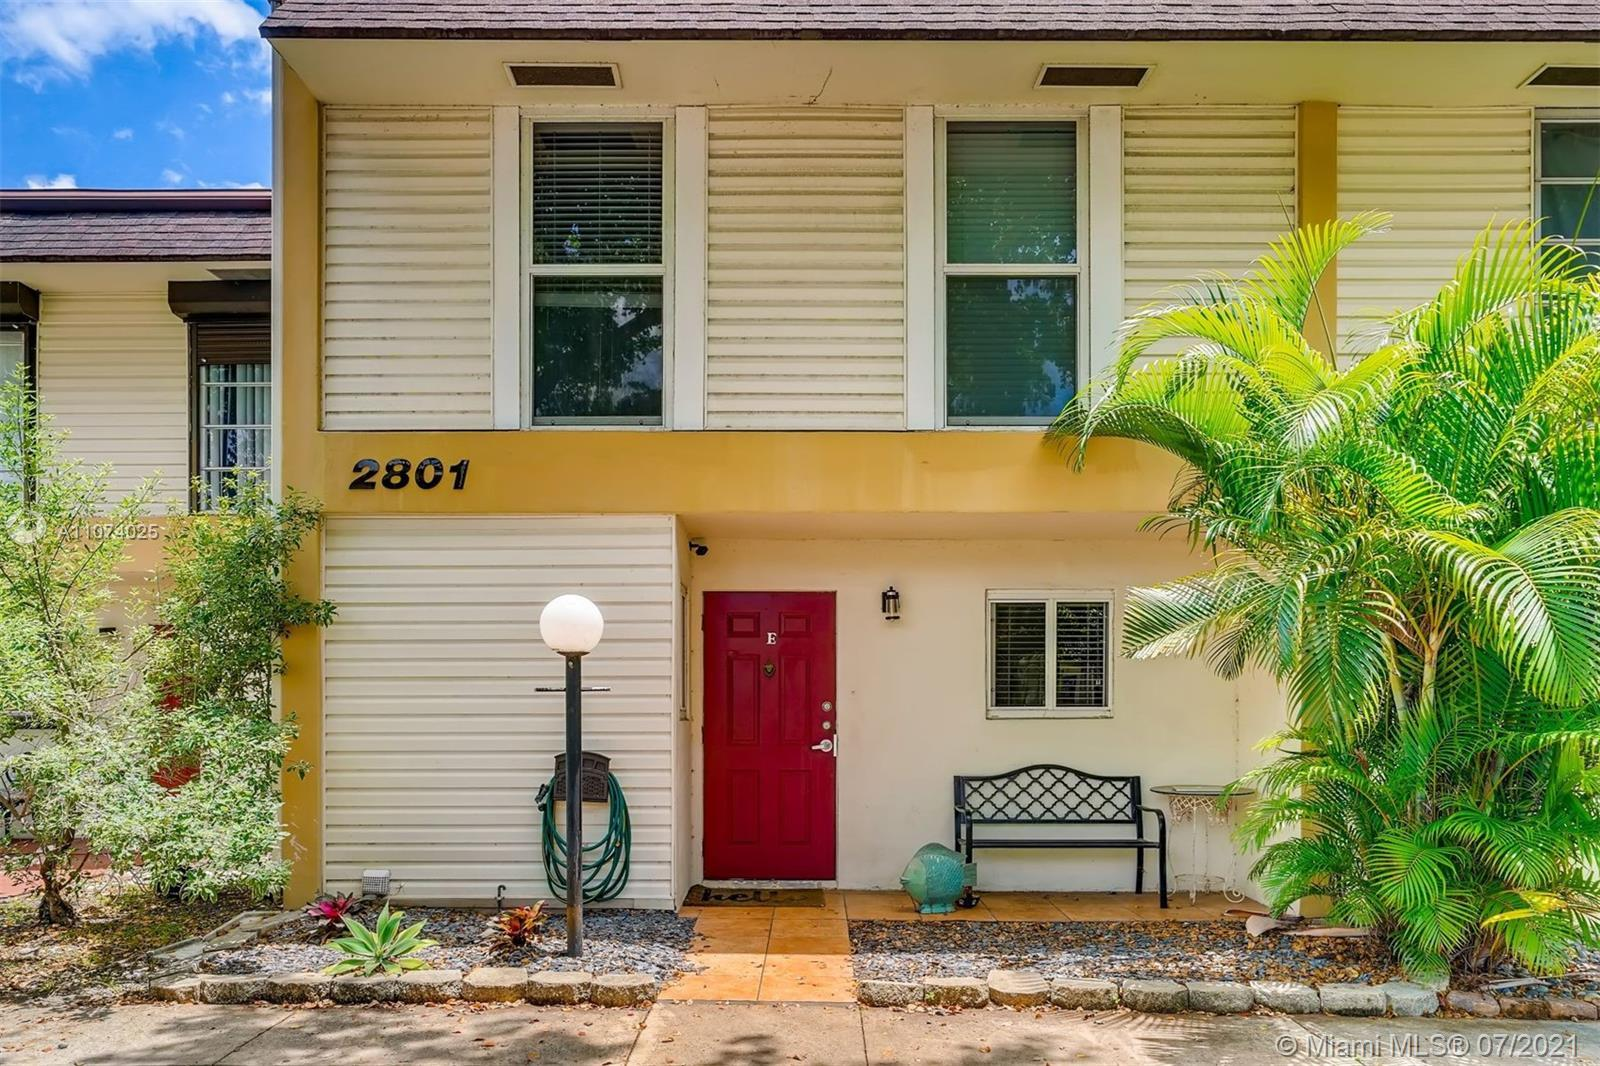 3 bd / 2.5 ba condo with renovated kitchen and baths. The kitchen has black granite countertops, sta